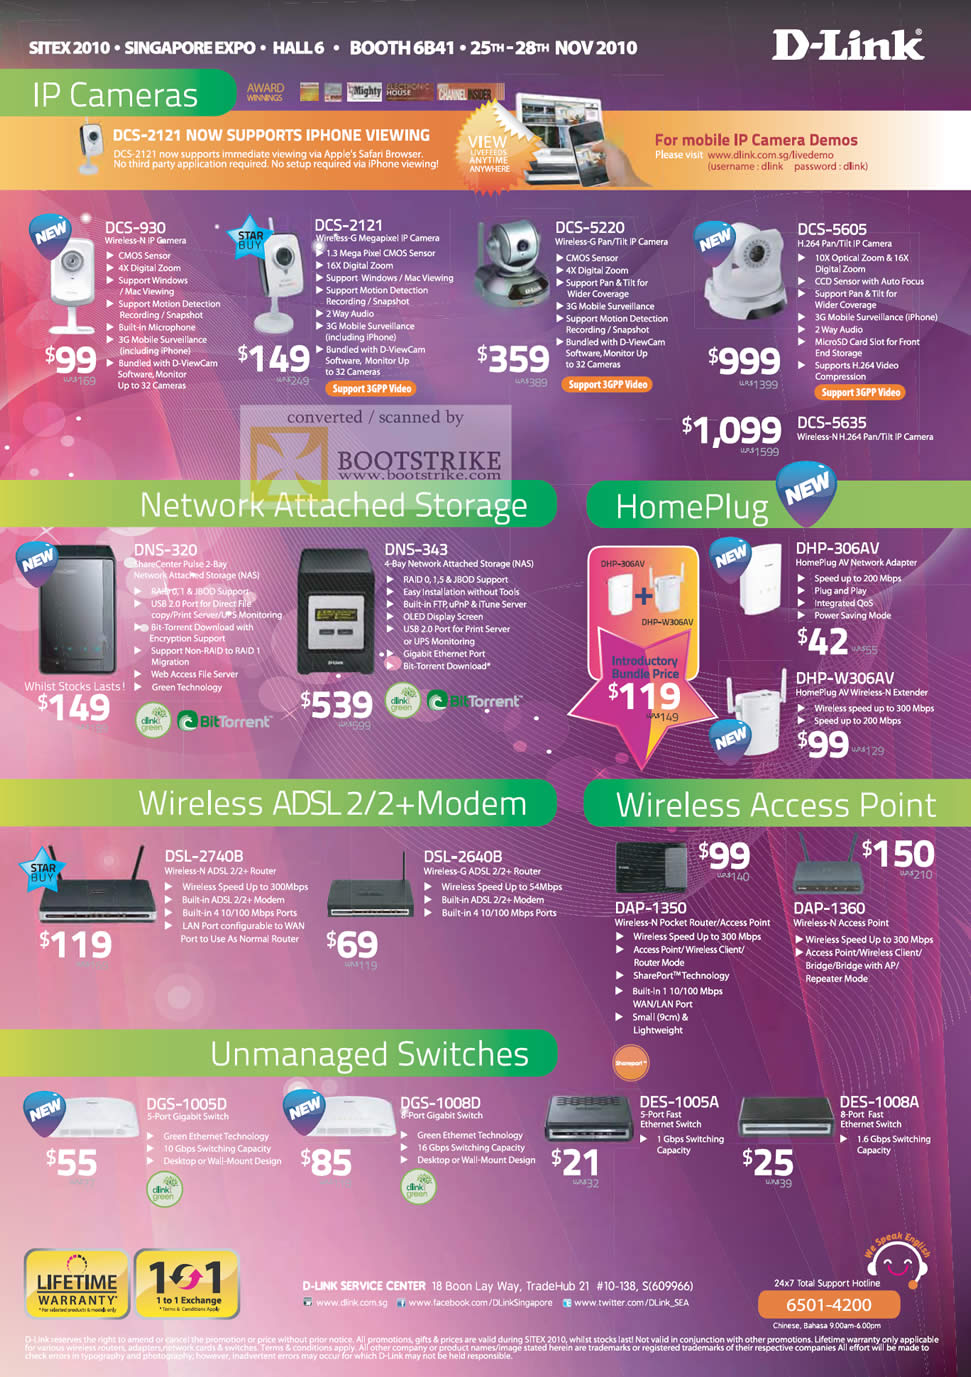 Sitex 2010 price list image brochure of D Link IPCam DCS 930 2121 5220 HomePlug NAS DNS DHP Wireless ADSL2 Model Router Switches DES DGS DSL DAP